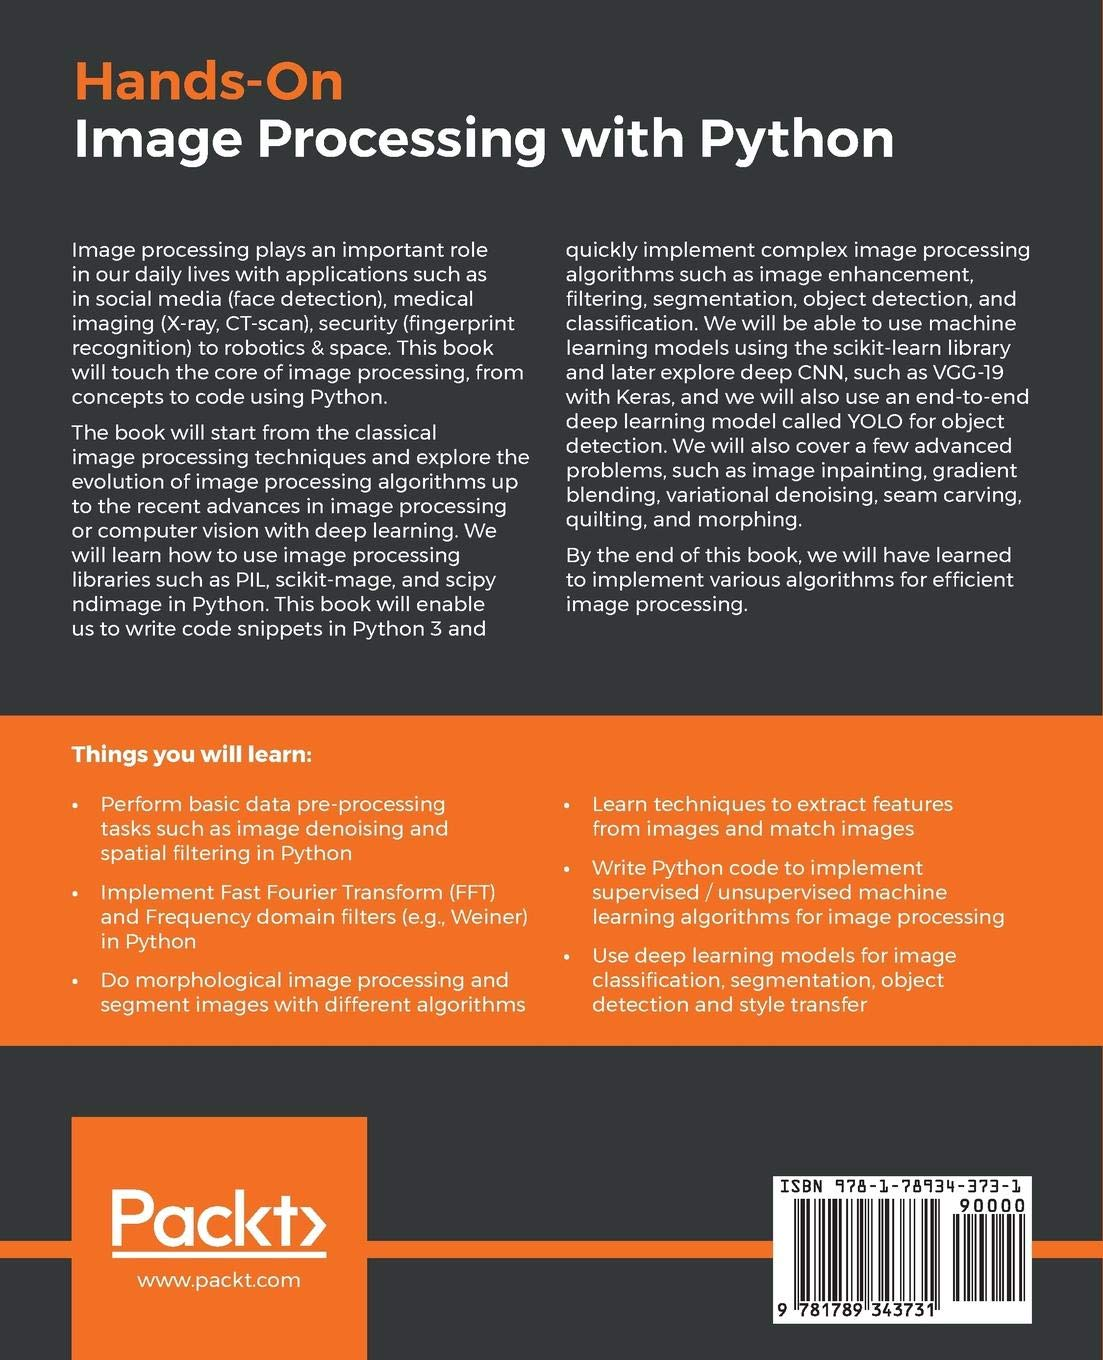 Hands-On Image Processing with Python: Expert techniques for